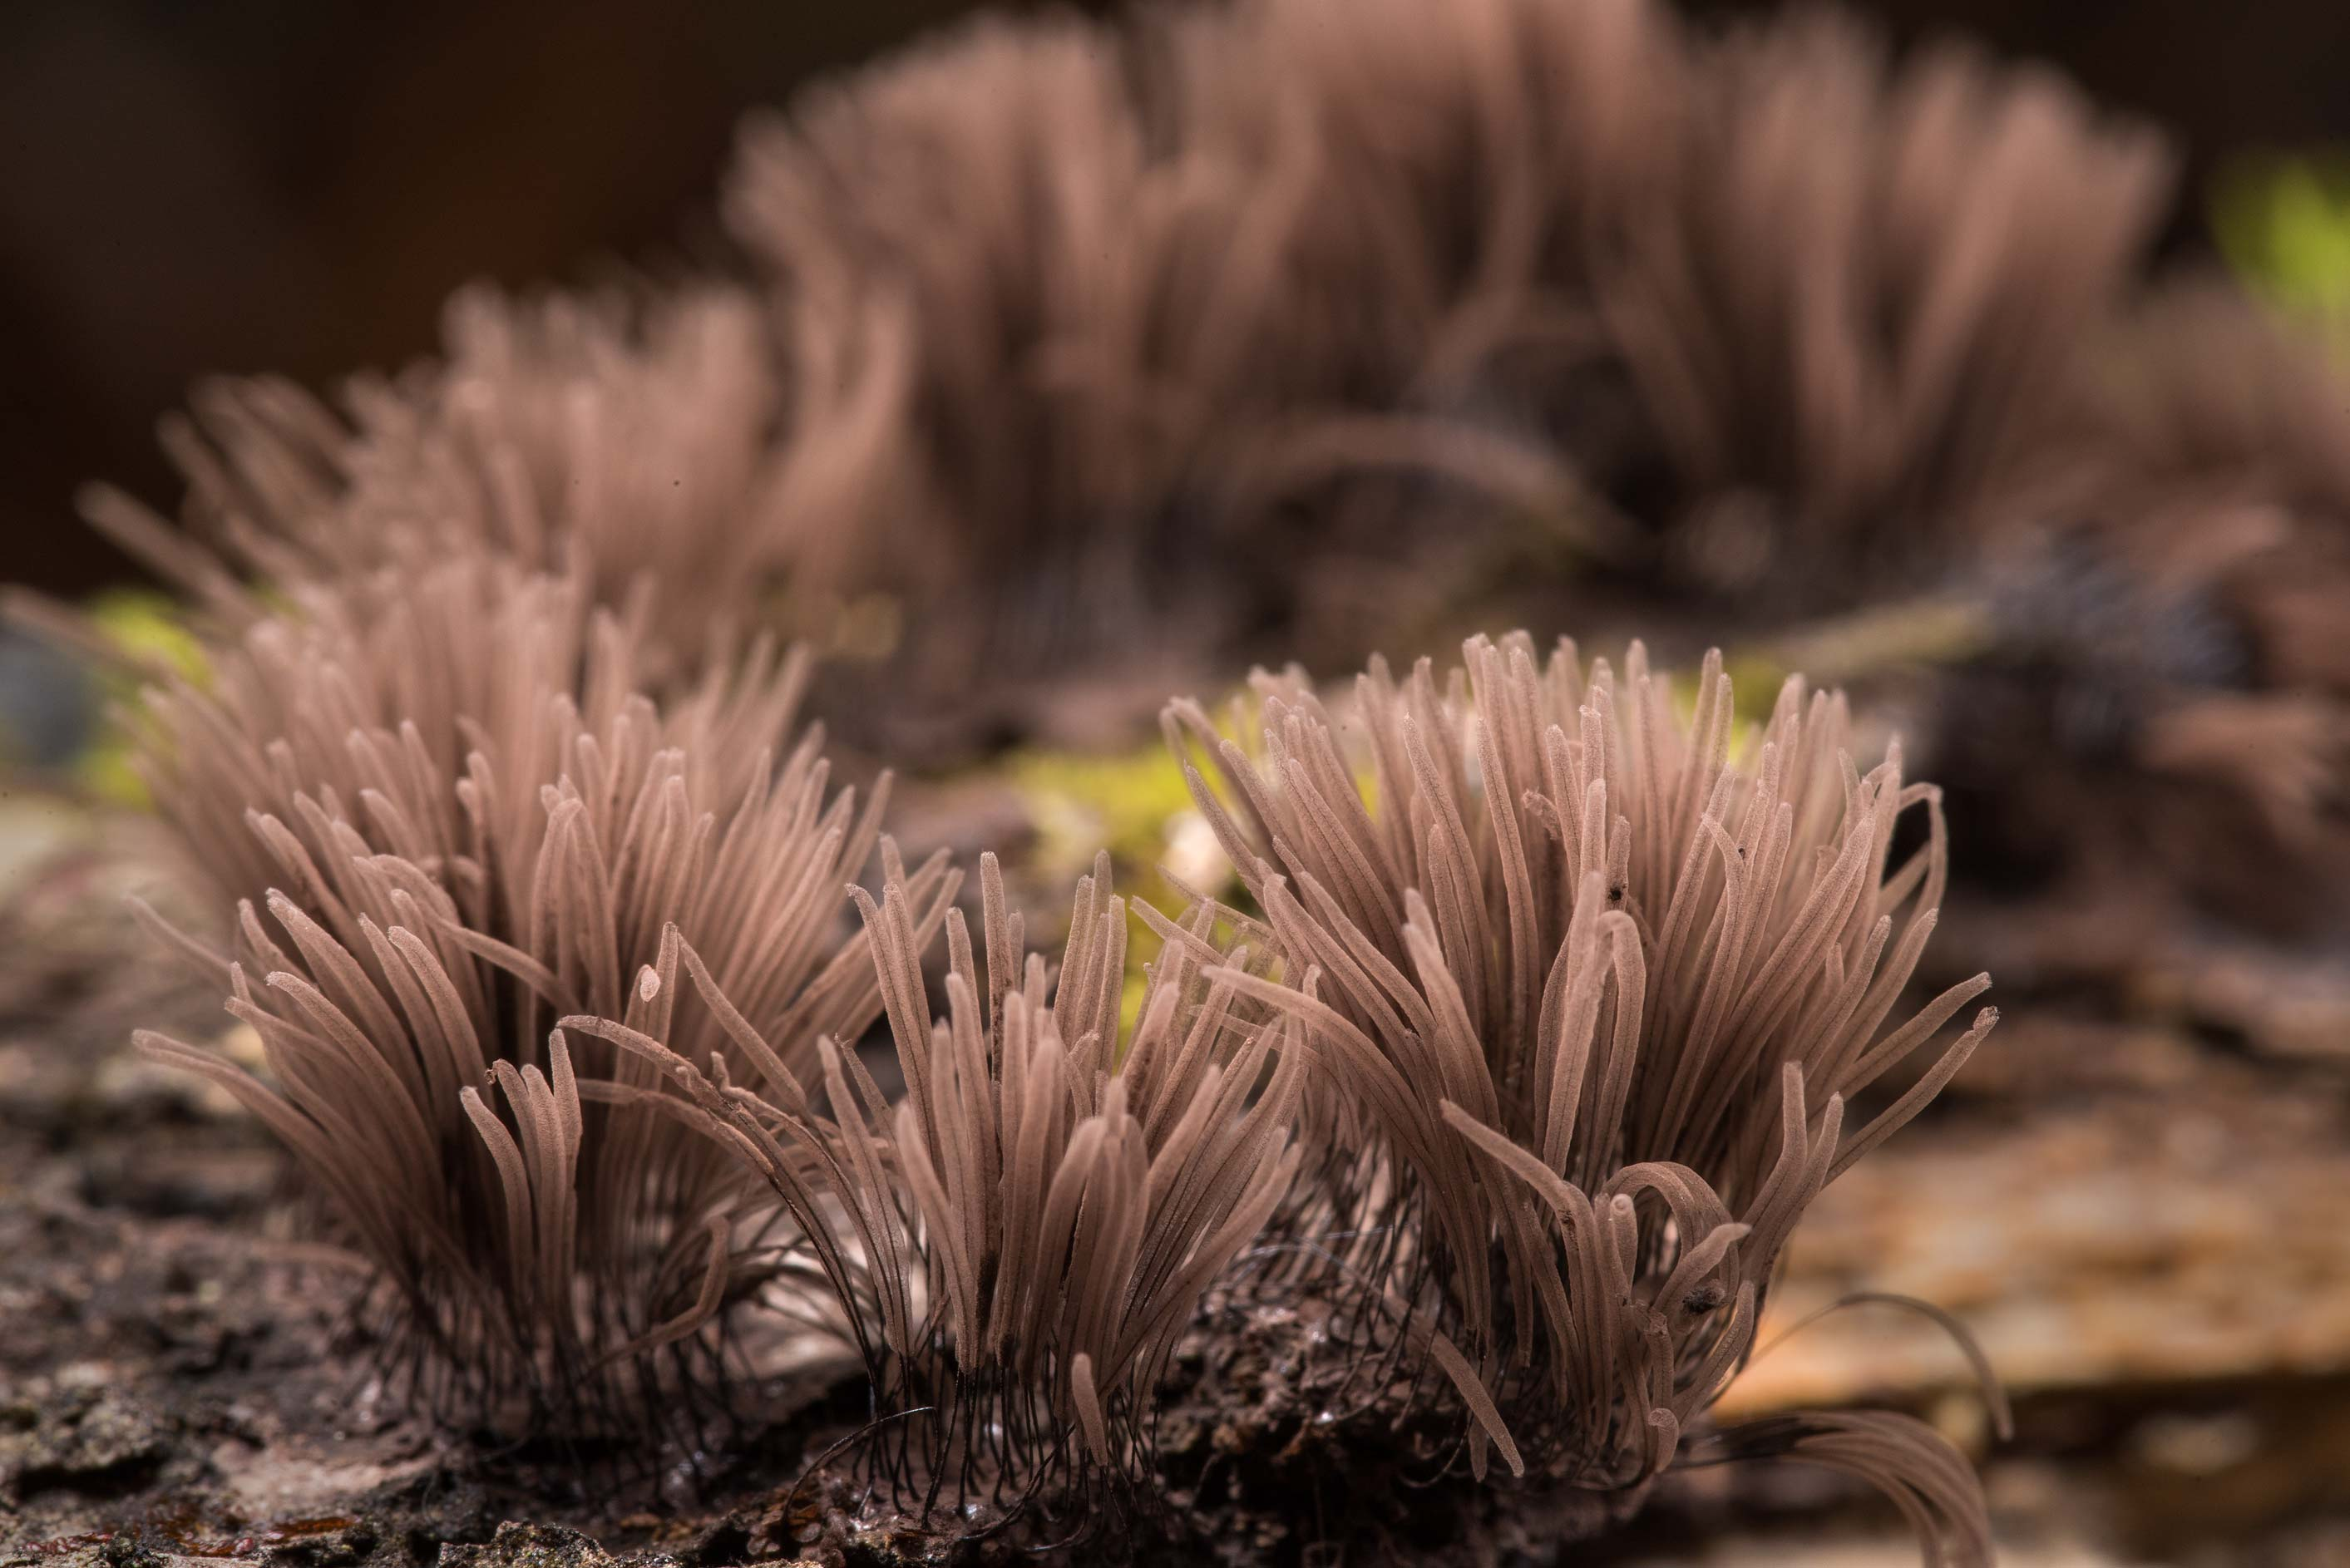 Close up of chocolate tube slime mold (Stemonitis...National Forest. Richards, Texas